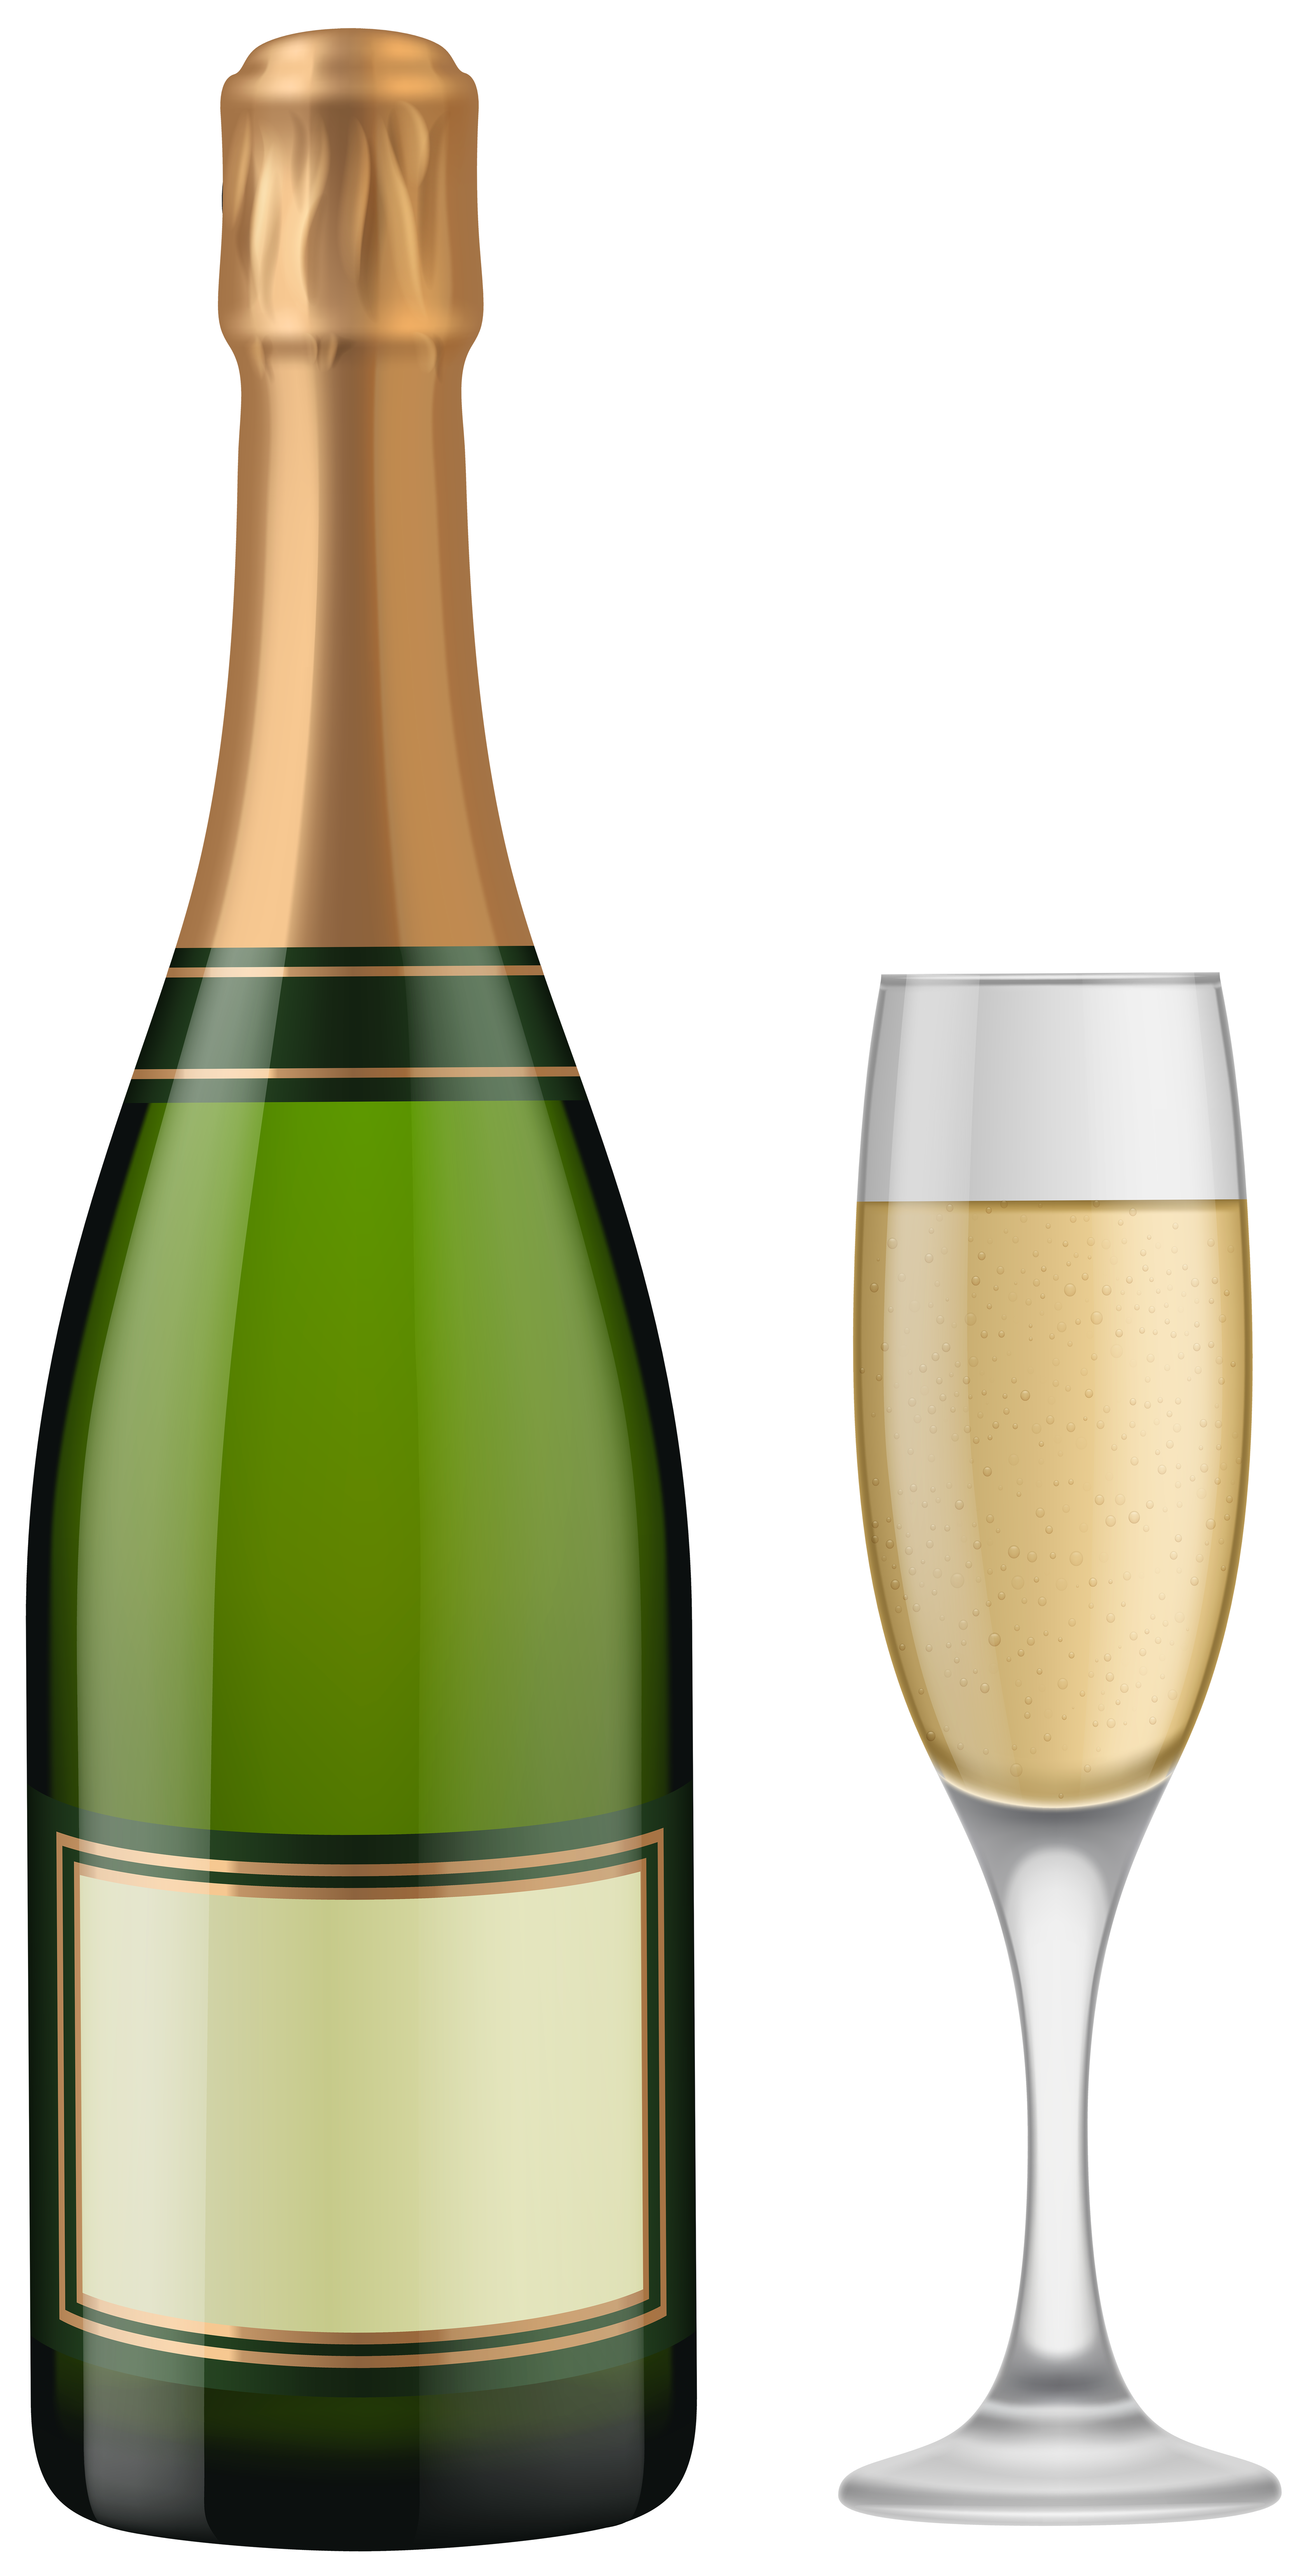 And glass png clip. Cocktail clipart vintage champagne bottle